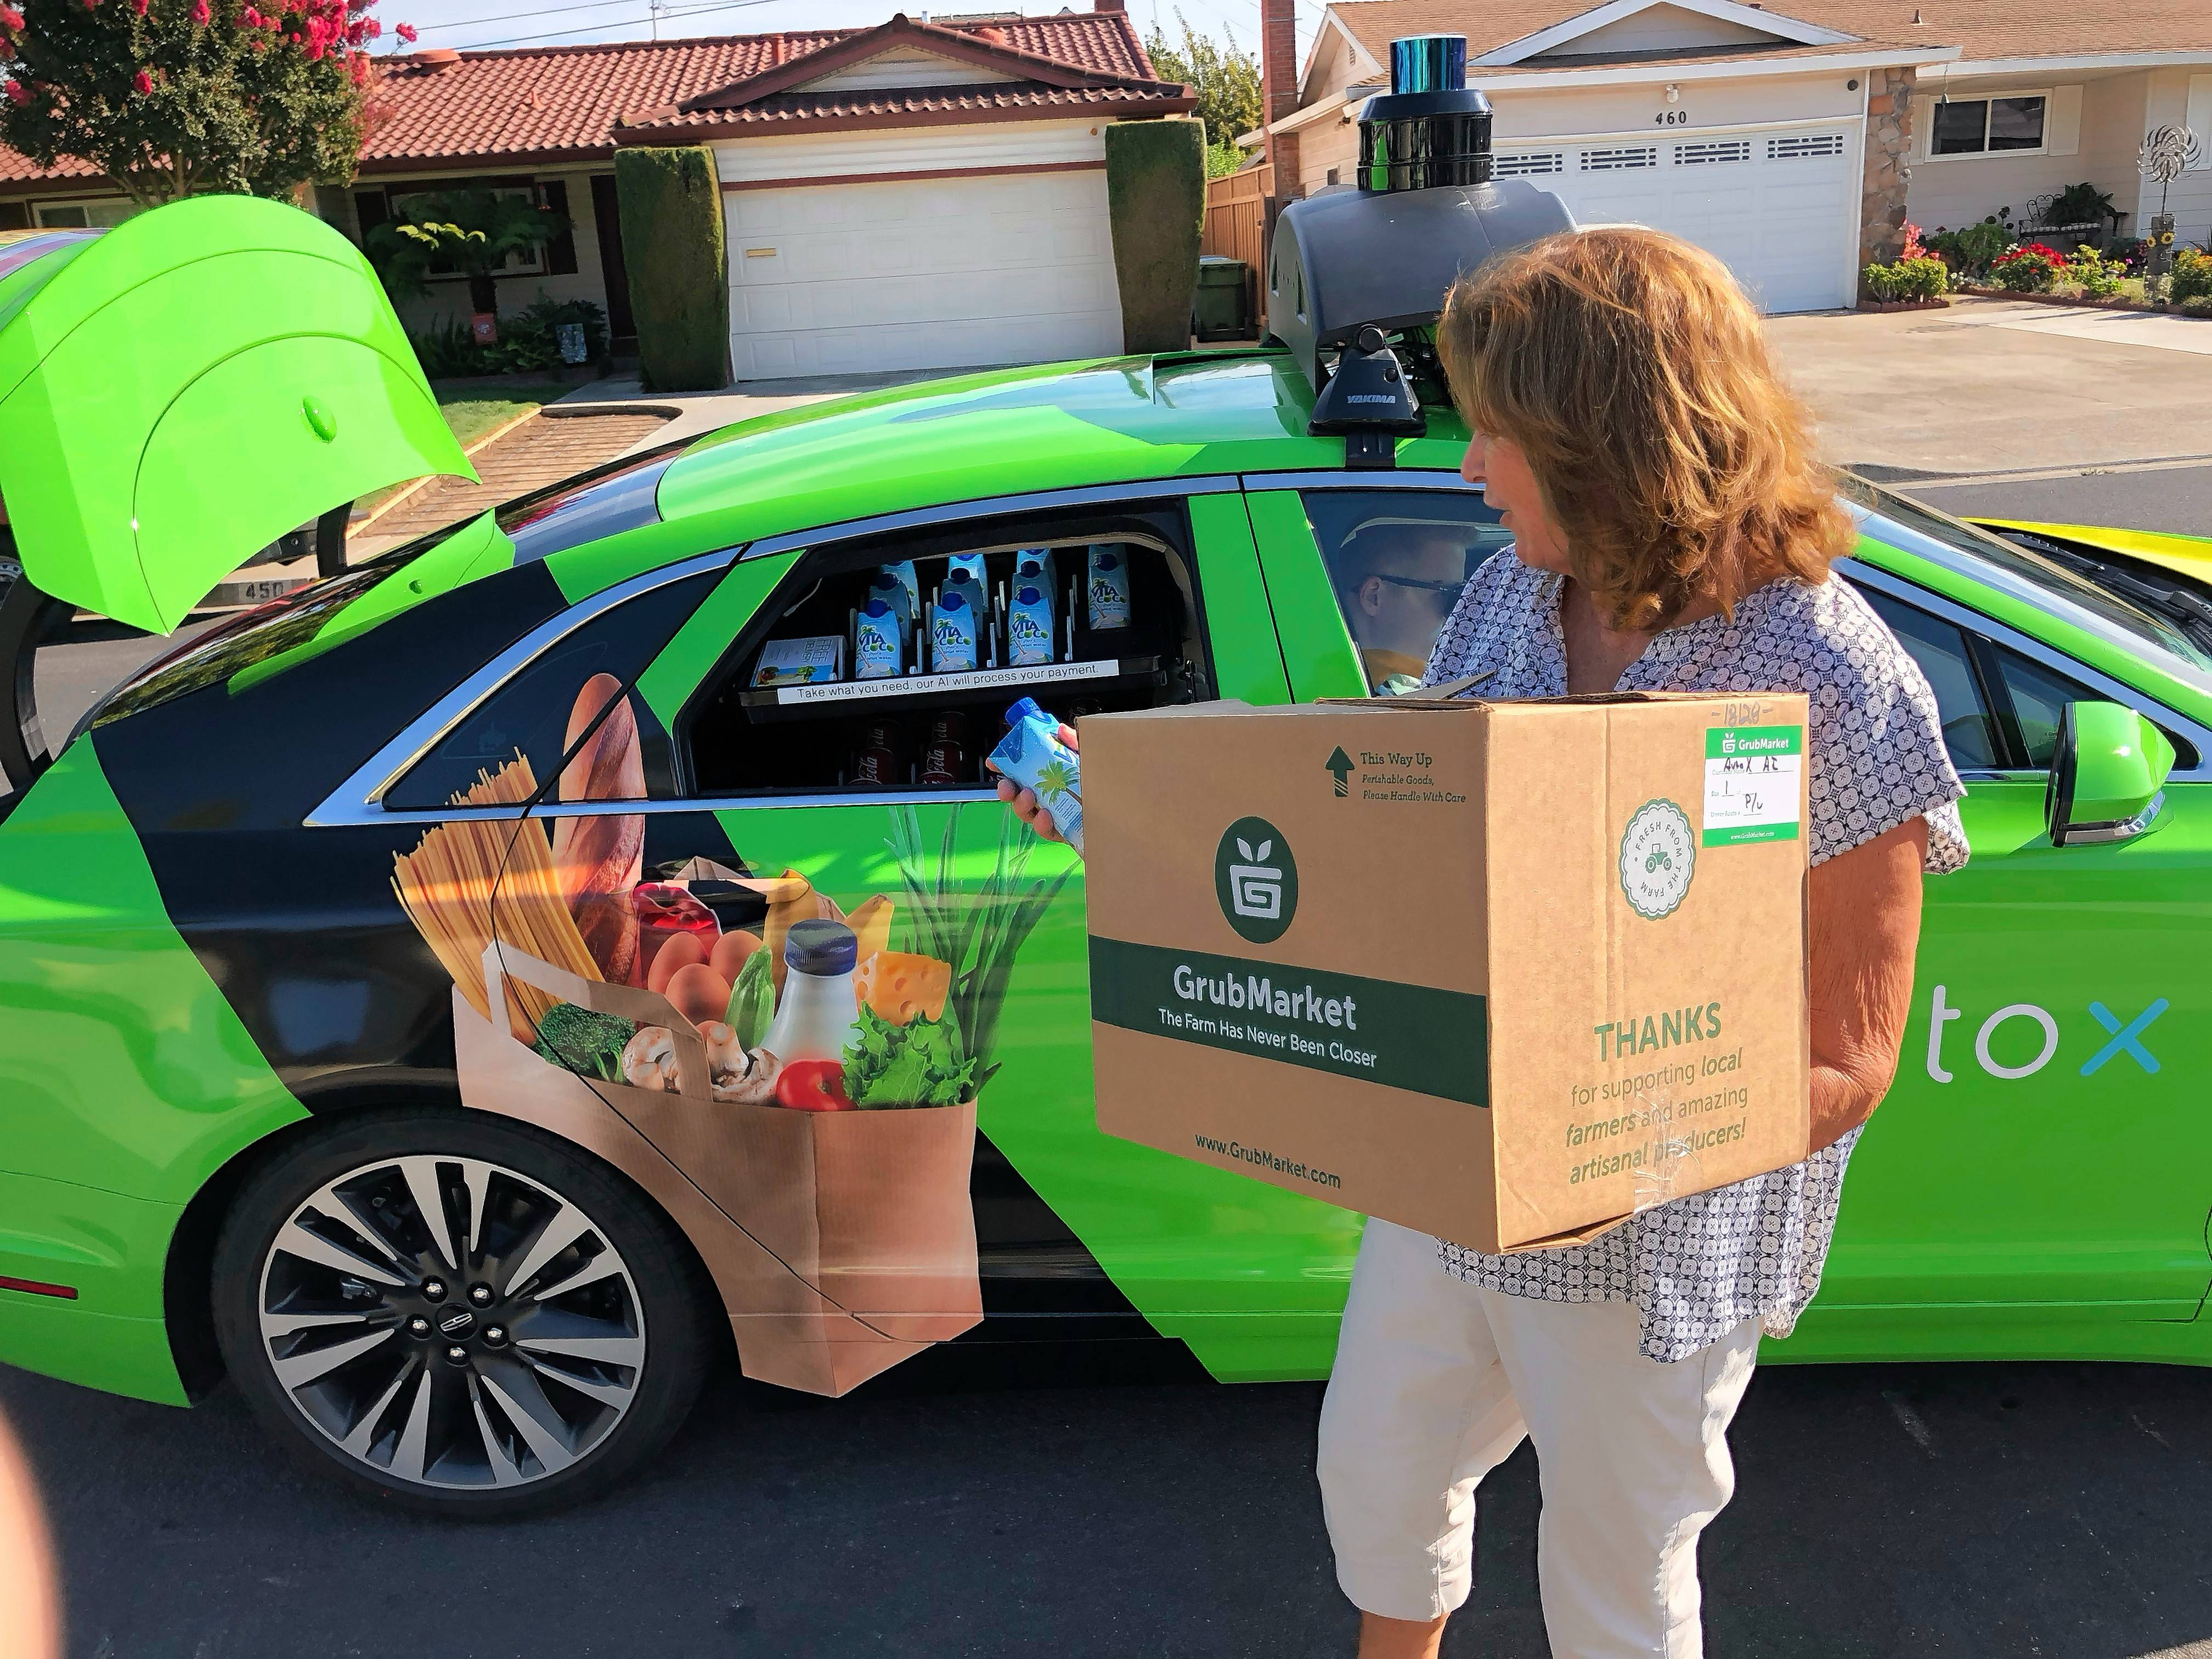 Customer Maureen Blaskovich grabs a coconut water from the back seat window of a self-driving car -- a Lincoln MKZ outfitted with technology by AutoX -- in San Jose, California. The company is partnering with grocery delivery startup GrubMarket in a pilot test to deliver groceries to shoppers near the company's headquarters.